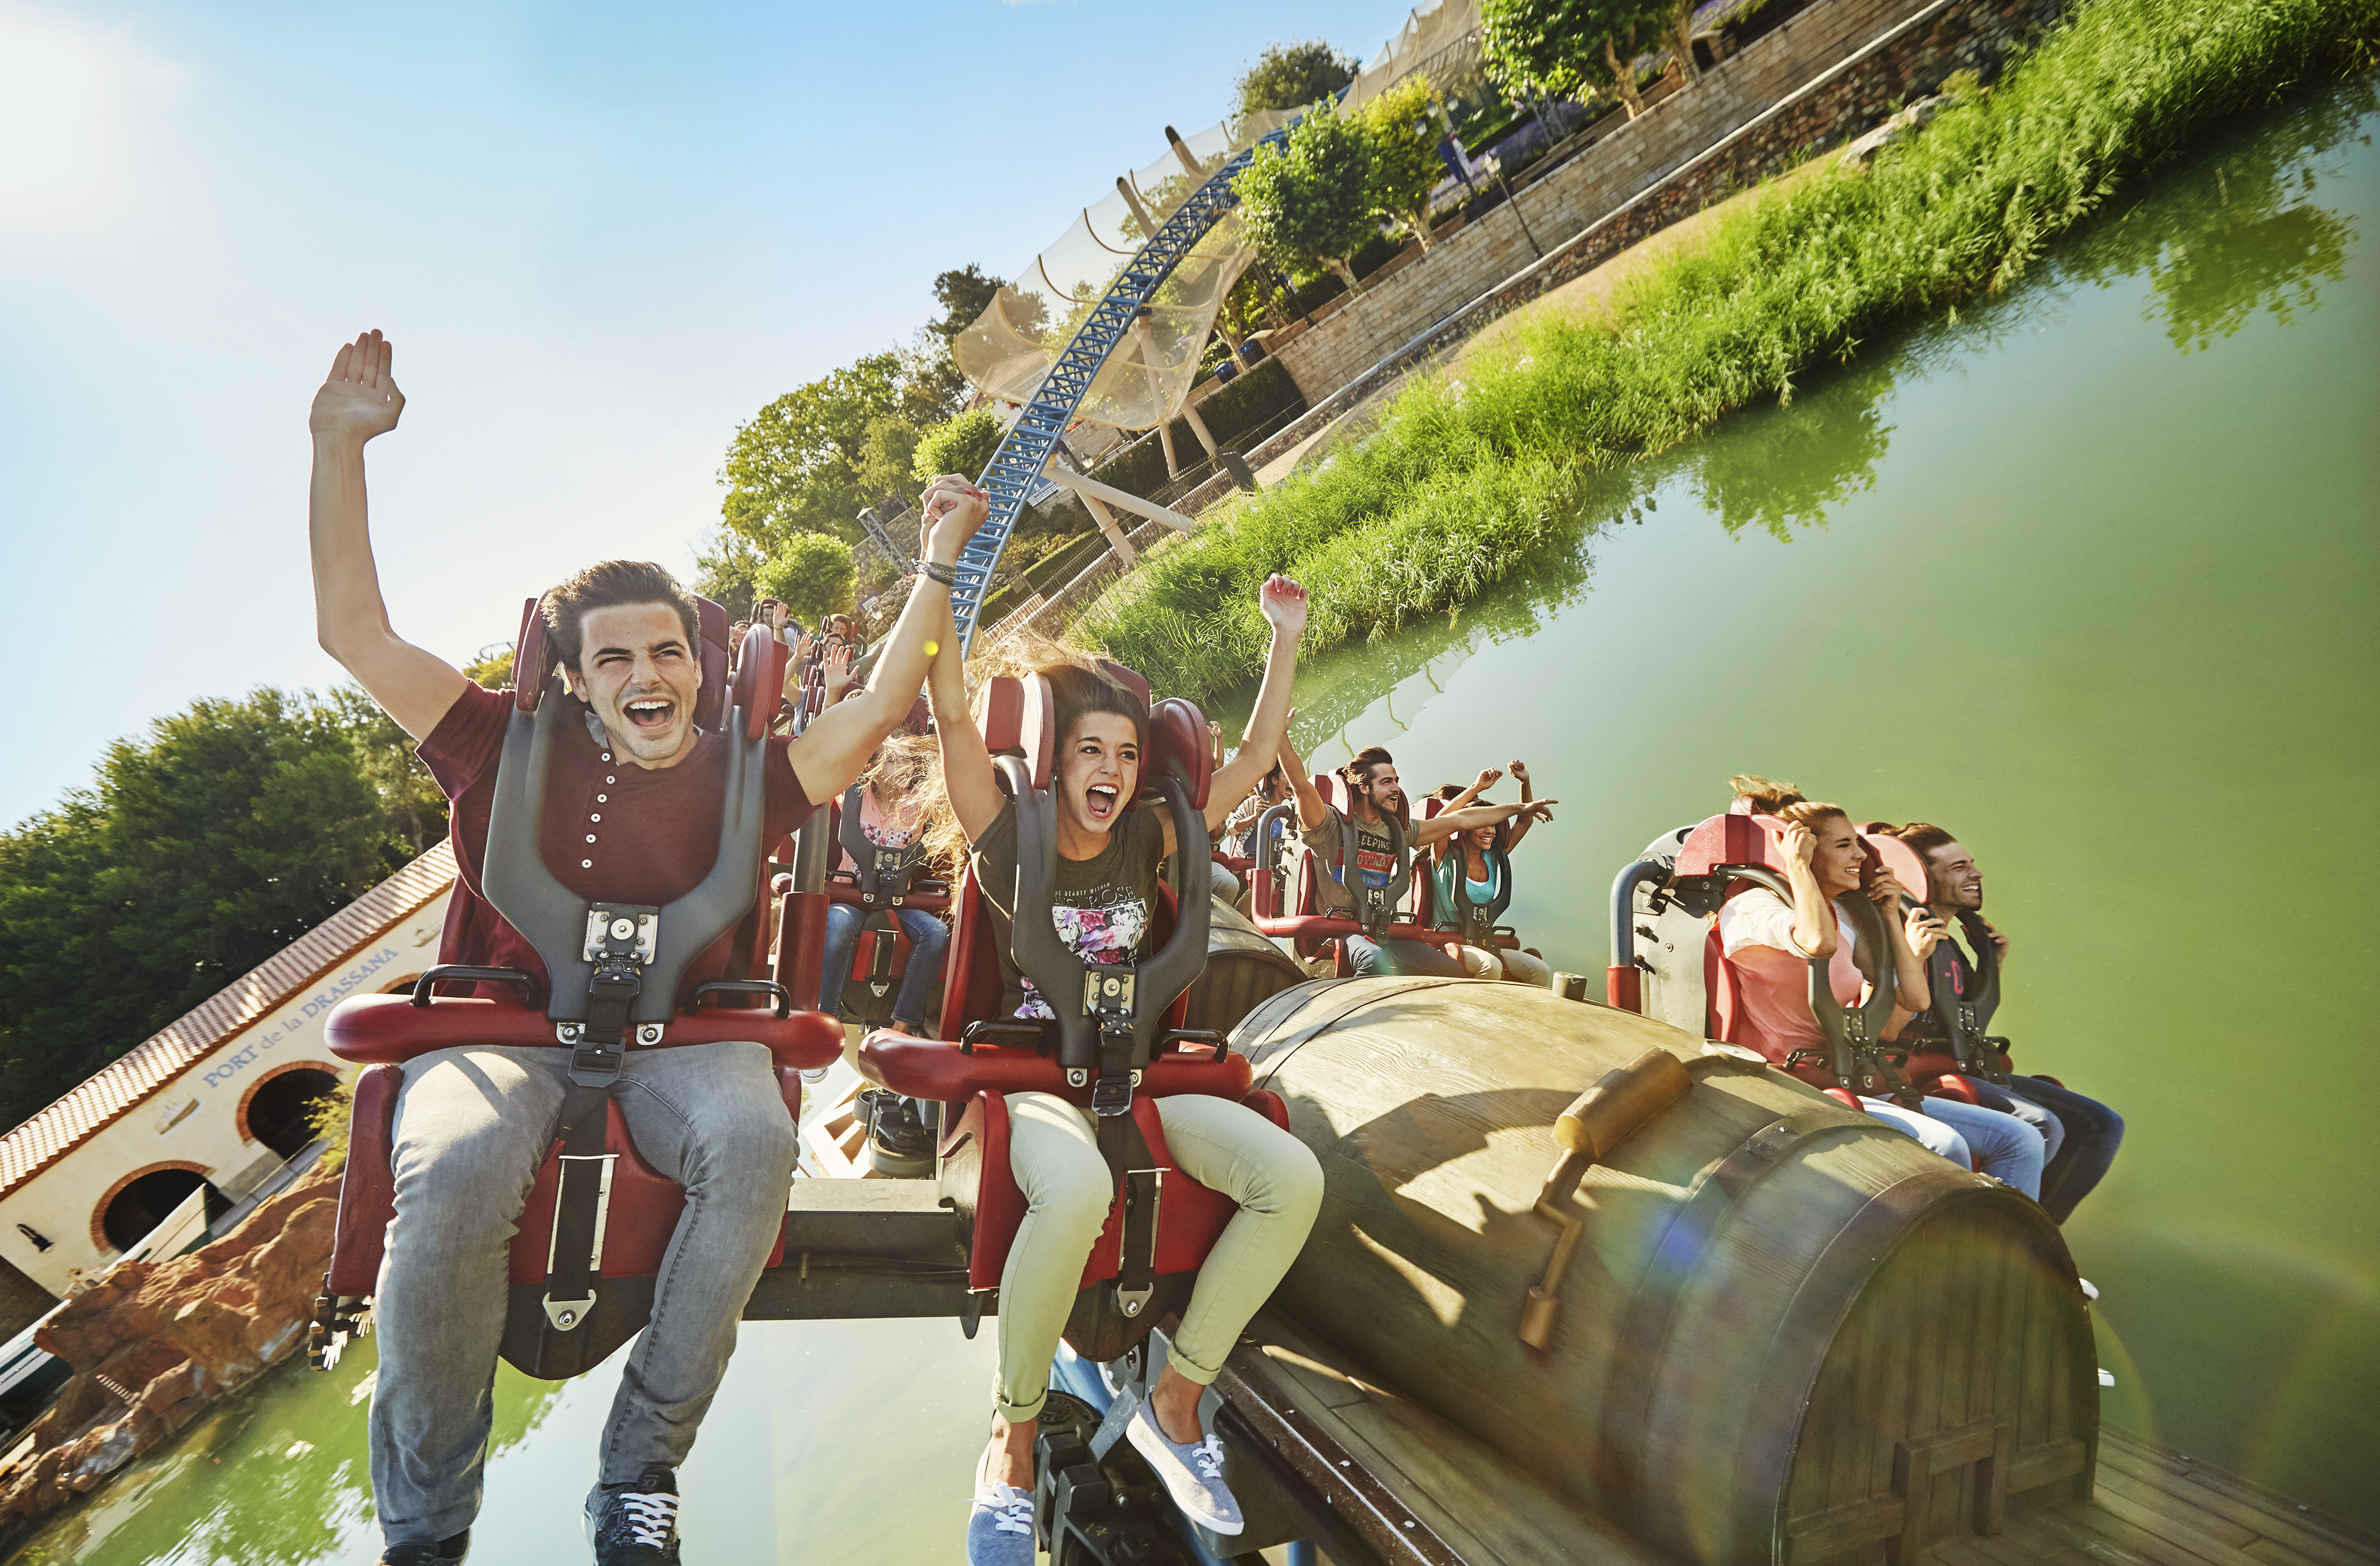 One of the rides in PortAventura Park